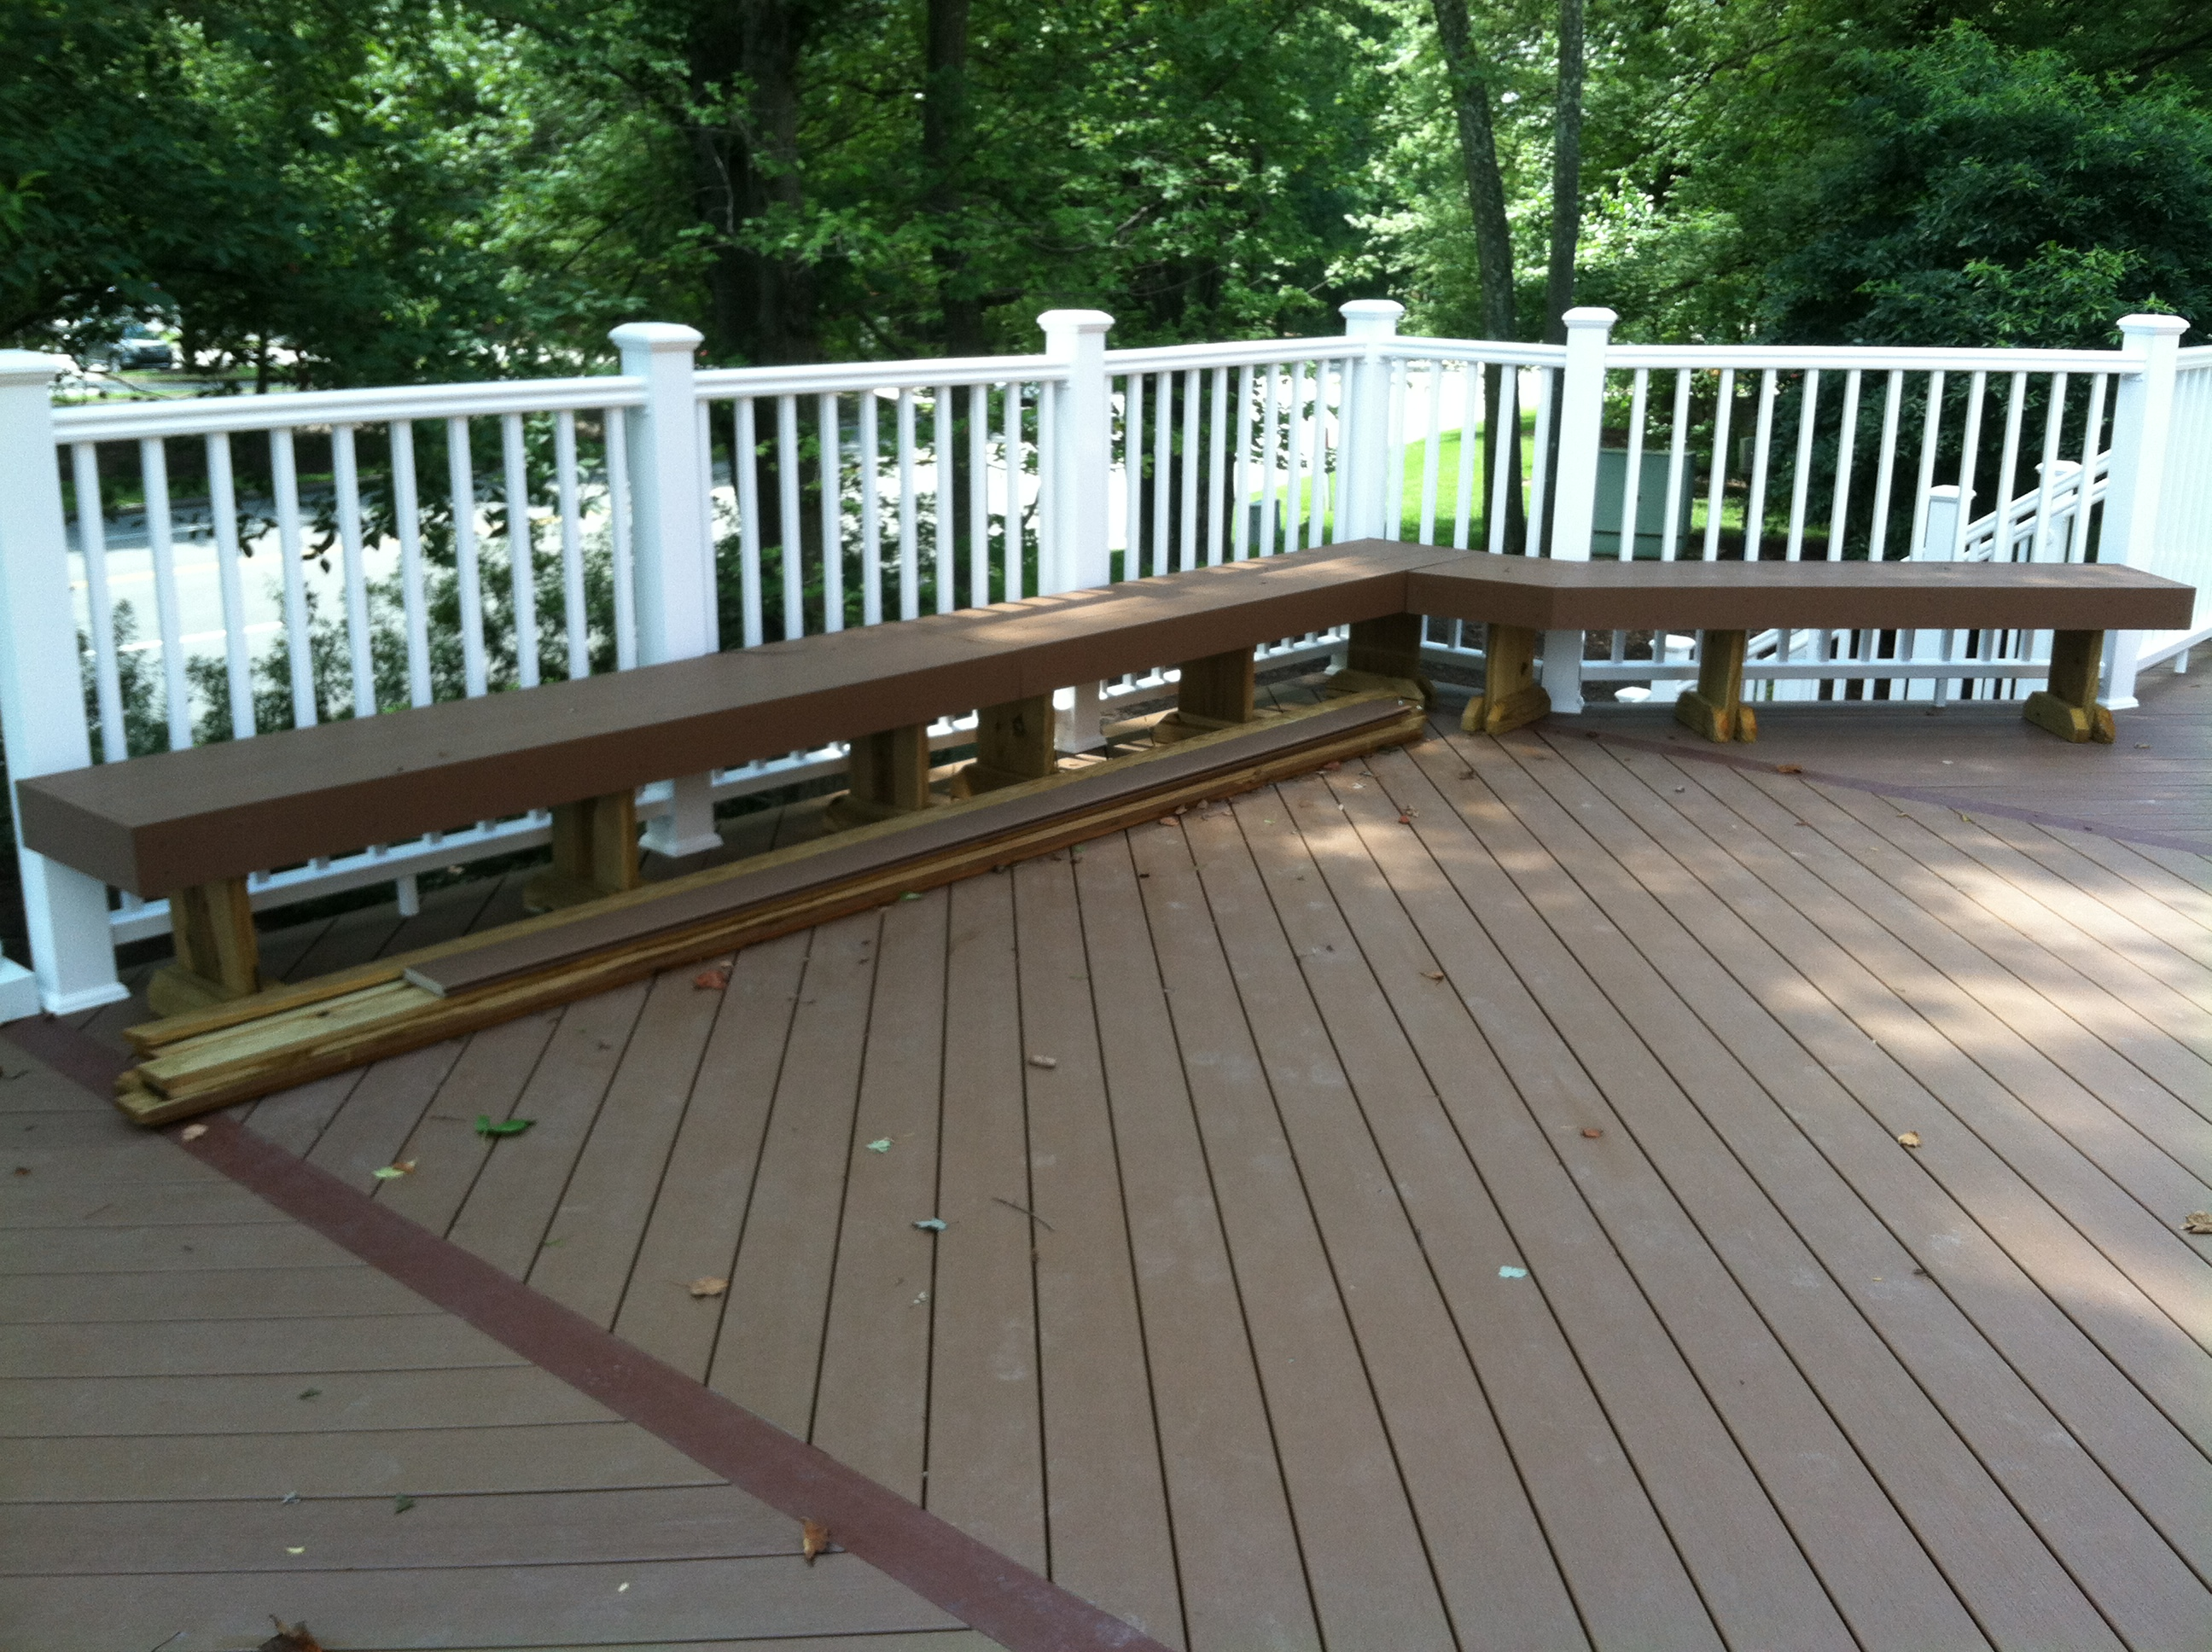 Home Depot Composite Decking Prices | Home Depot Decking Boards | Veranda Composite Decking